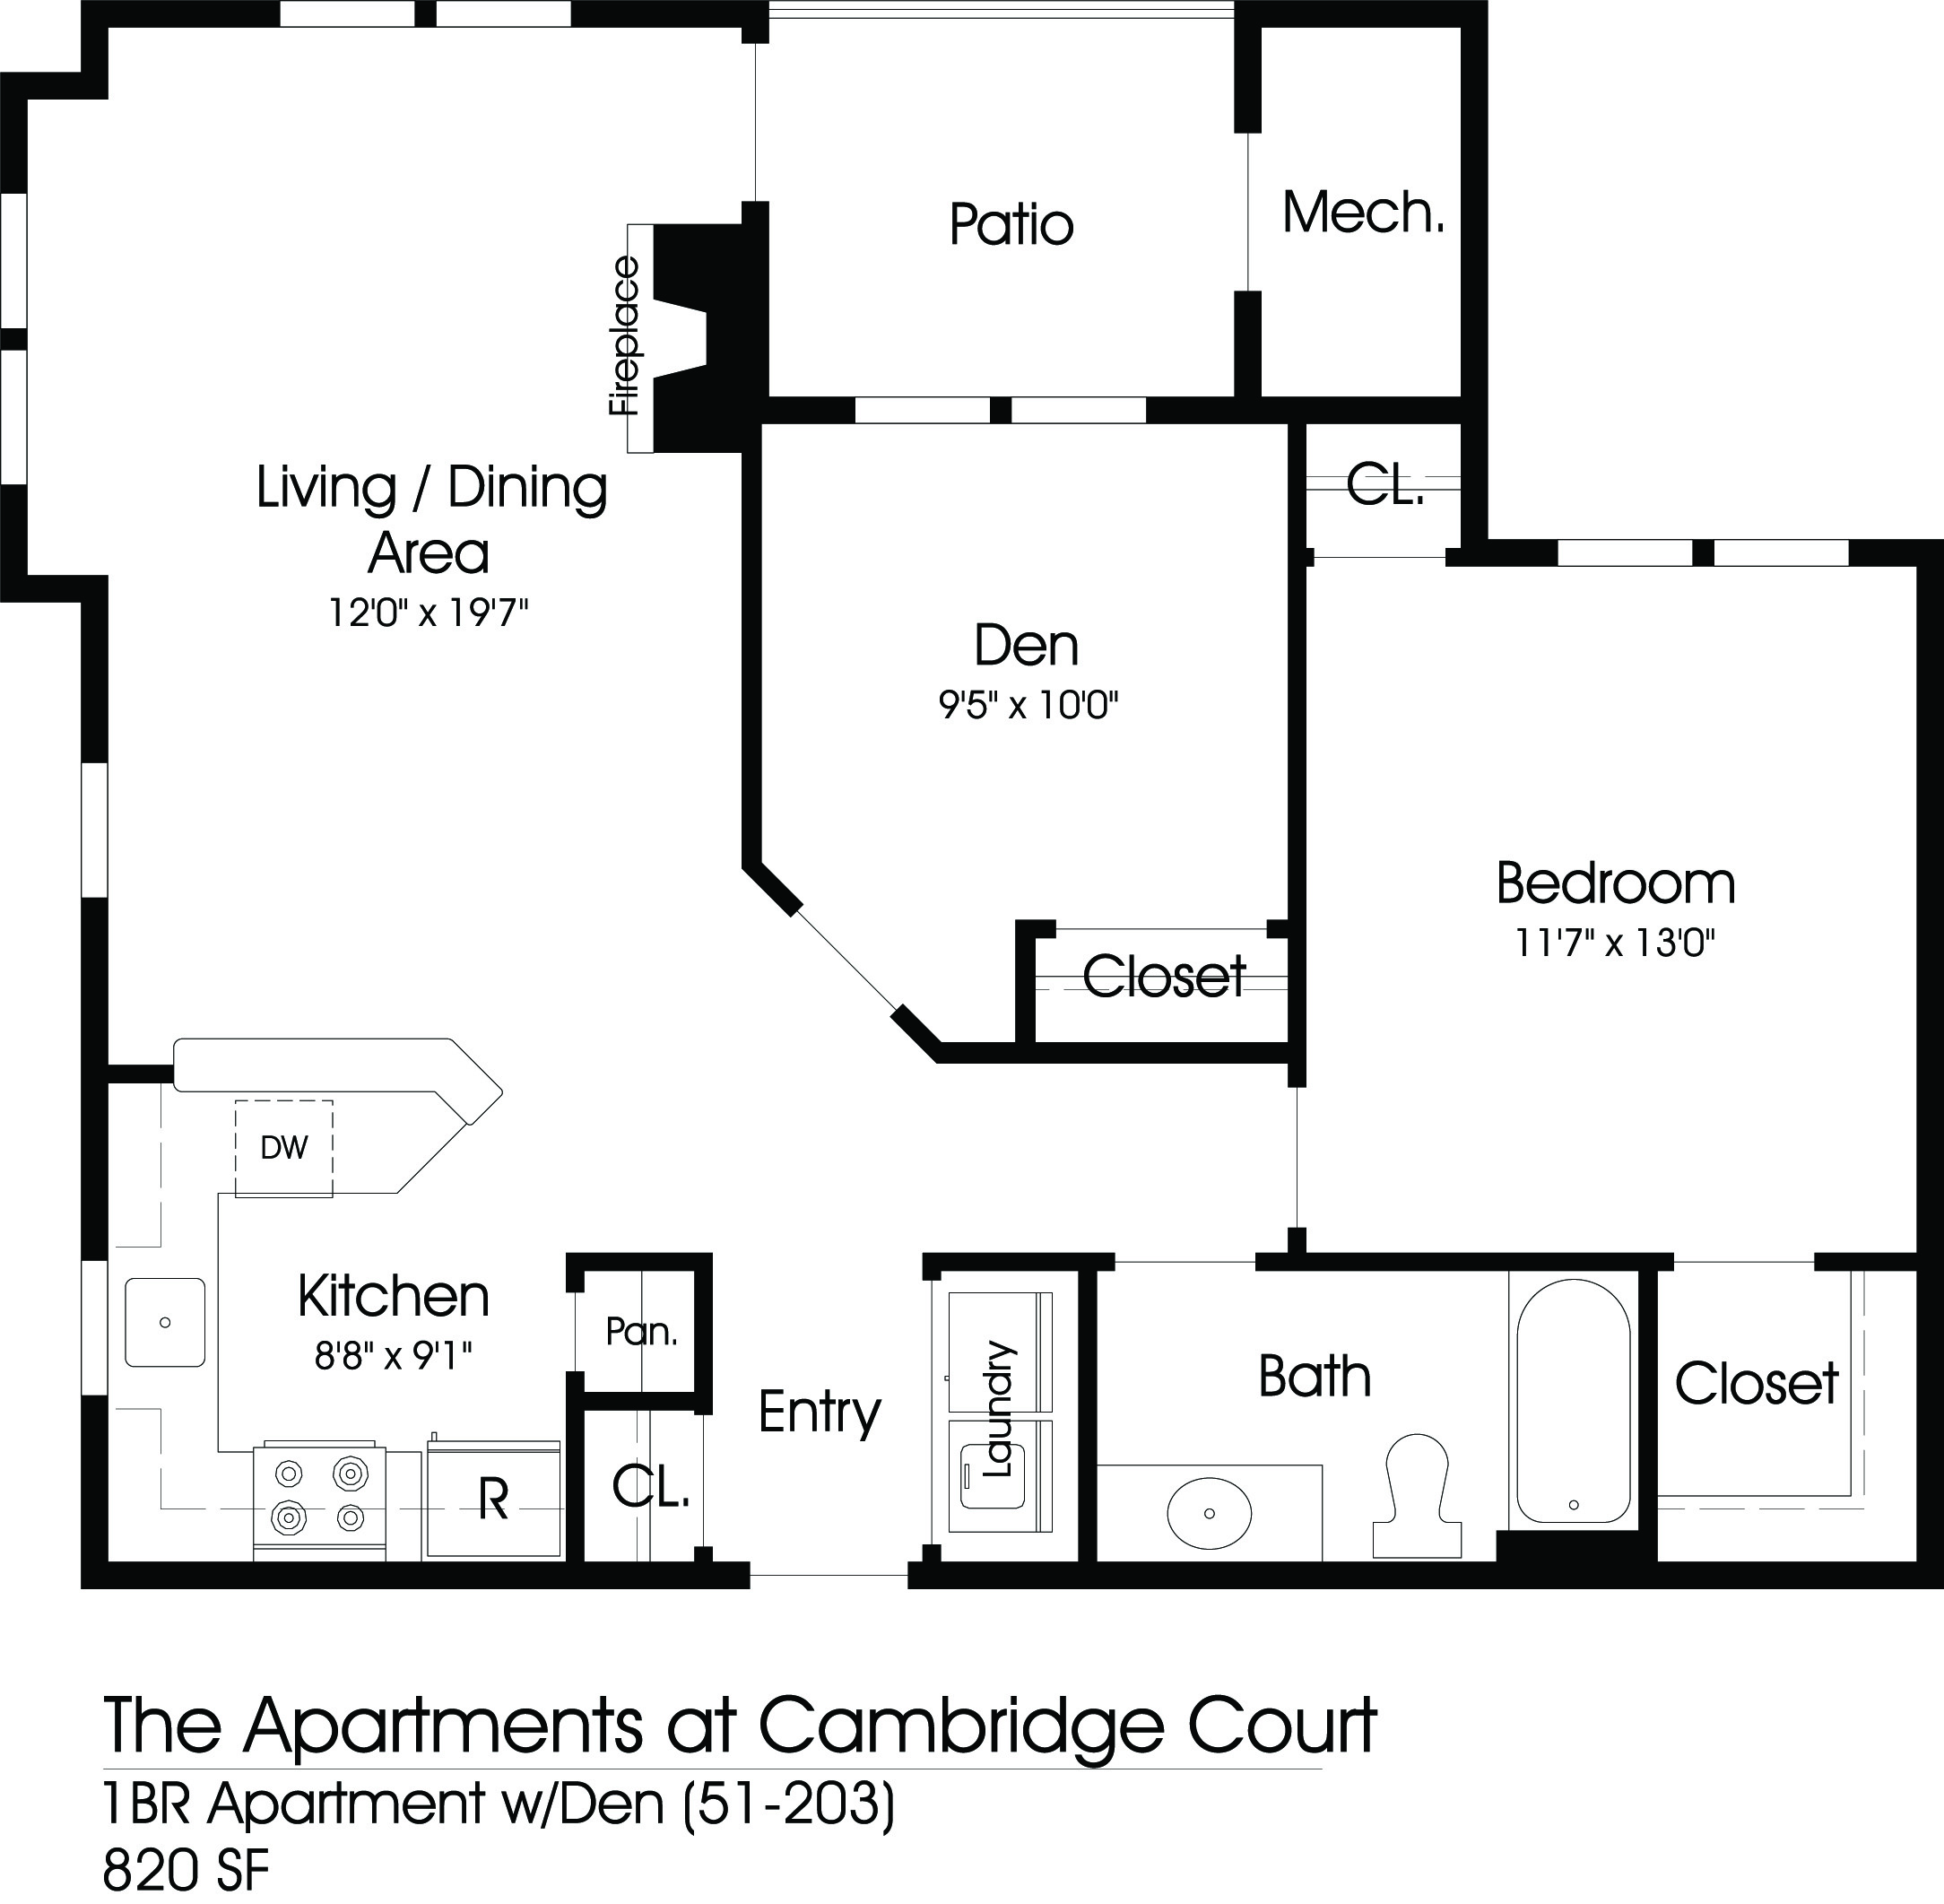 The Apartments at Cambridge Court